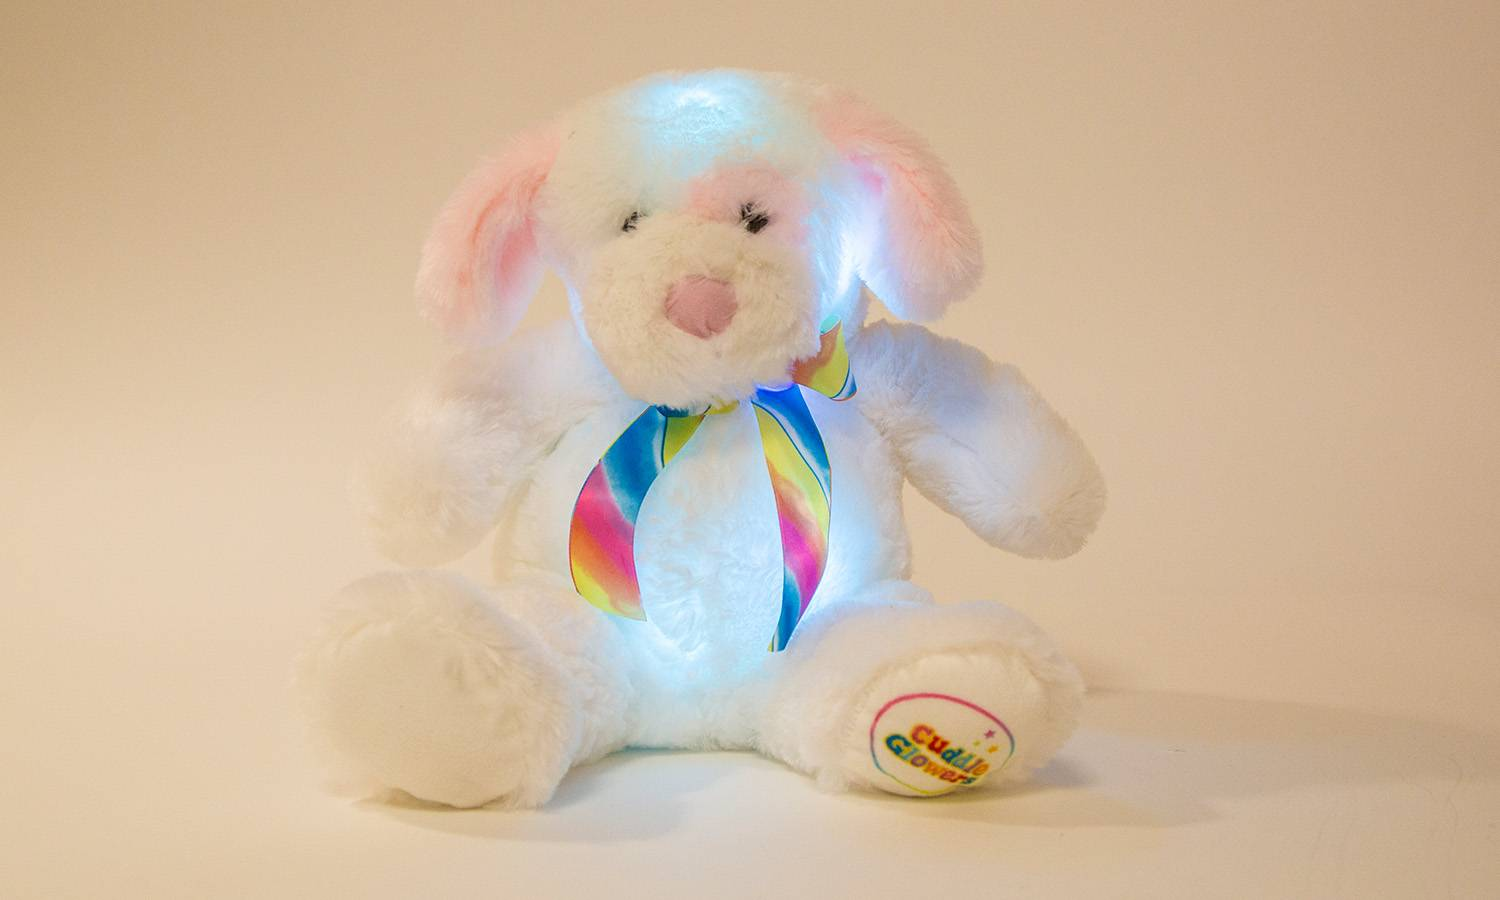 Groupon Goods One Glowing Puppy Cuddly Toy - Pink